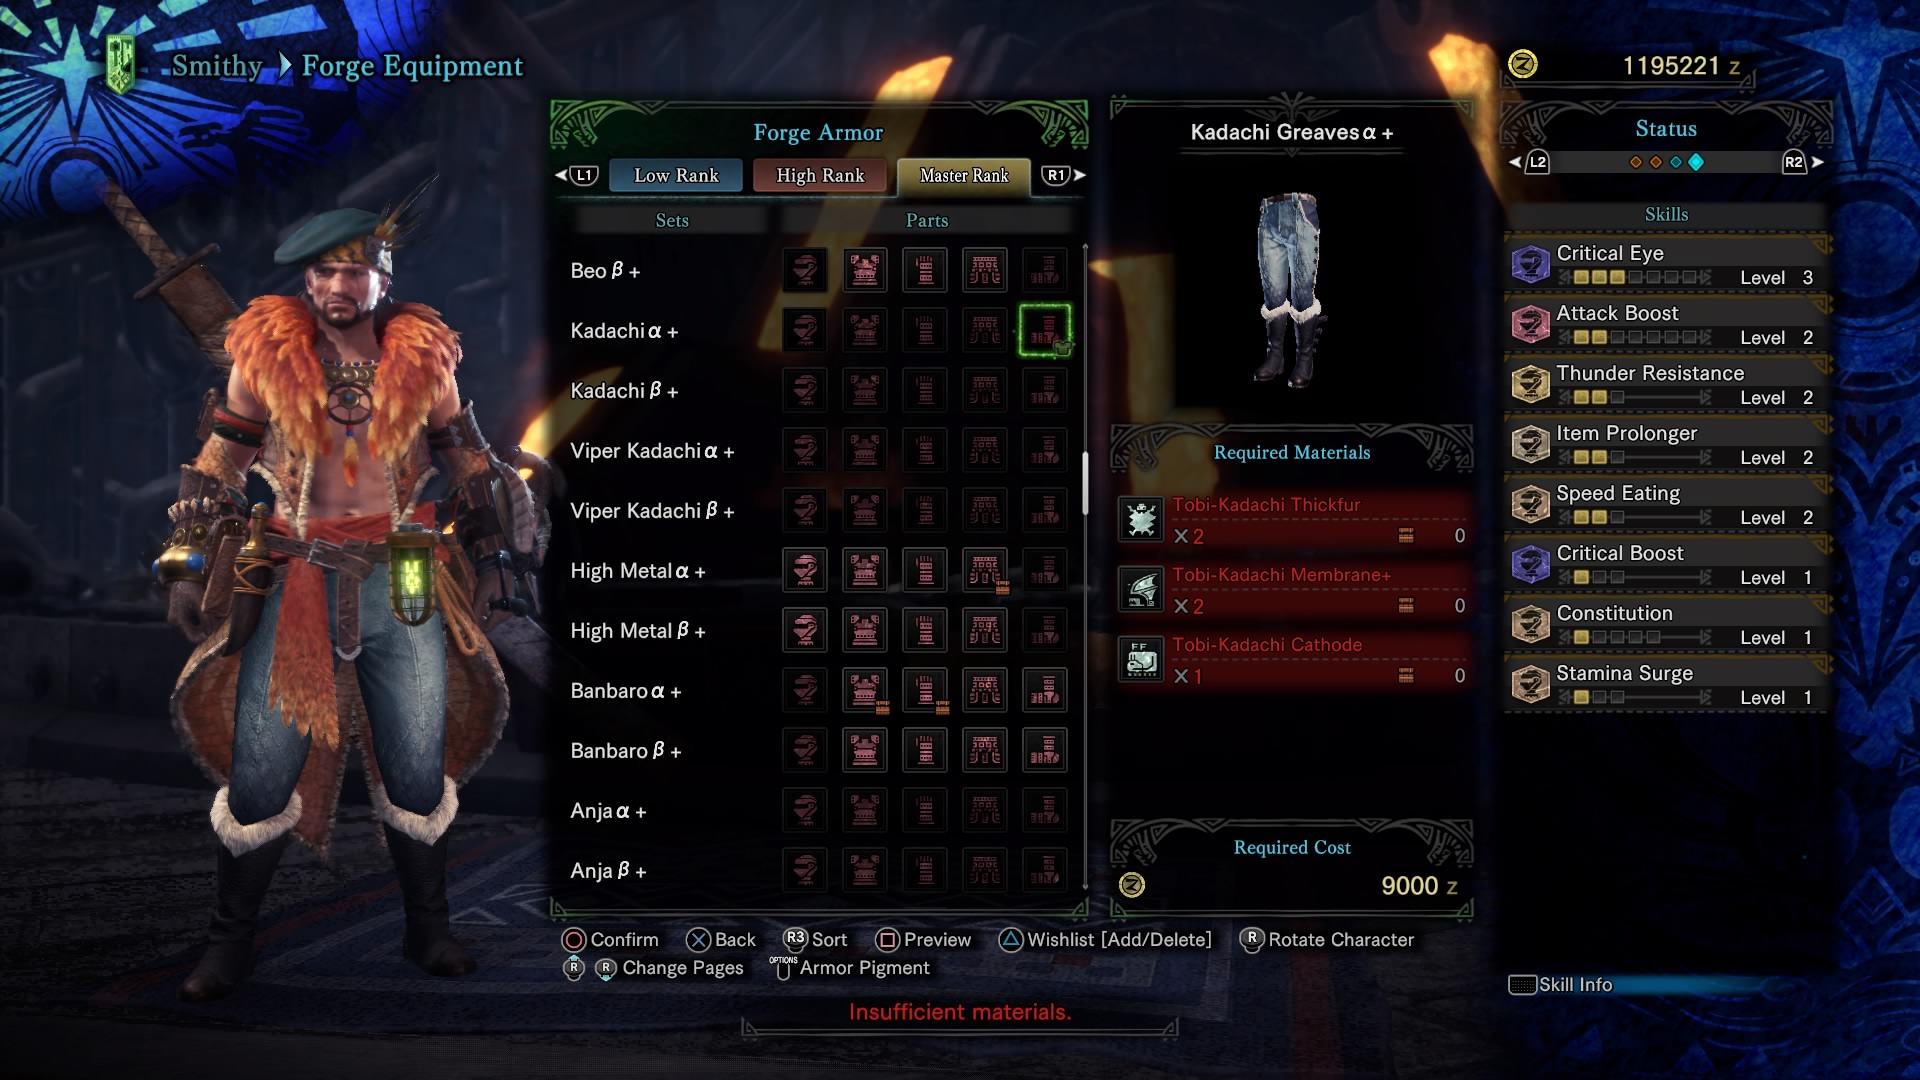 Bow - Best Loadout Build & Skill Guide - MHW: ICEBORNE